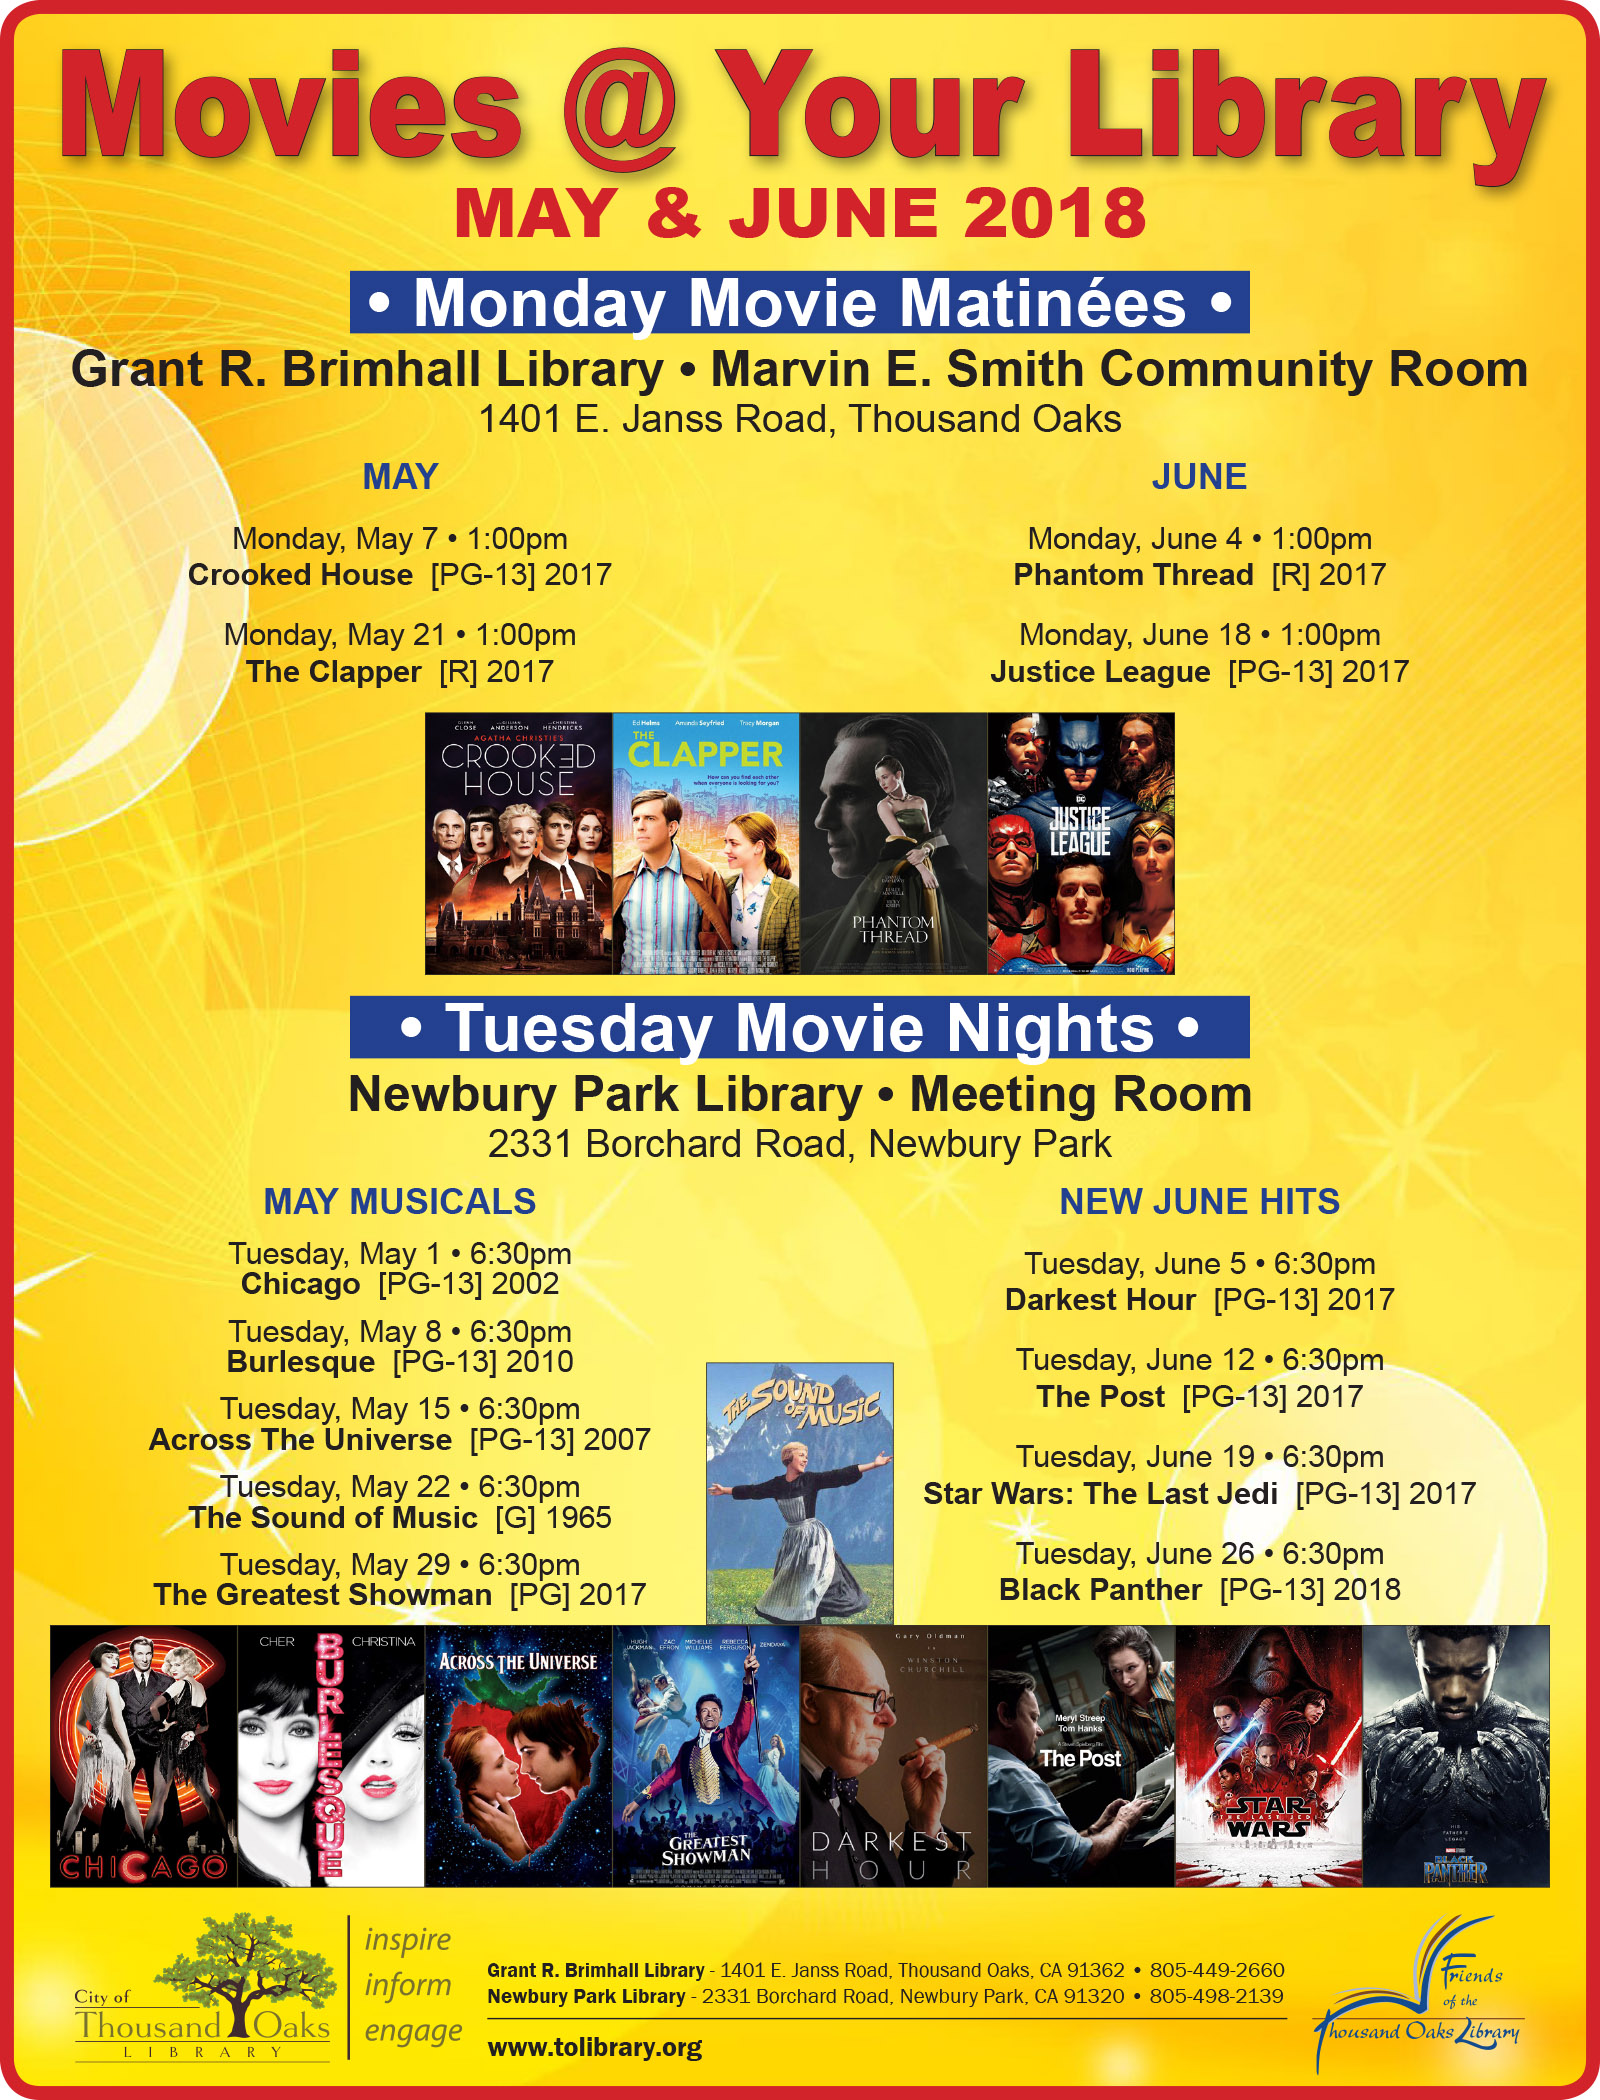 Tuesday Free Movie Nights - The Sound of Music | Calendar